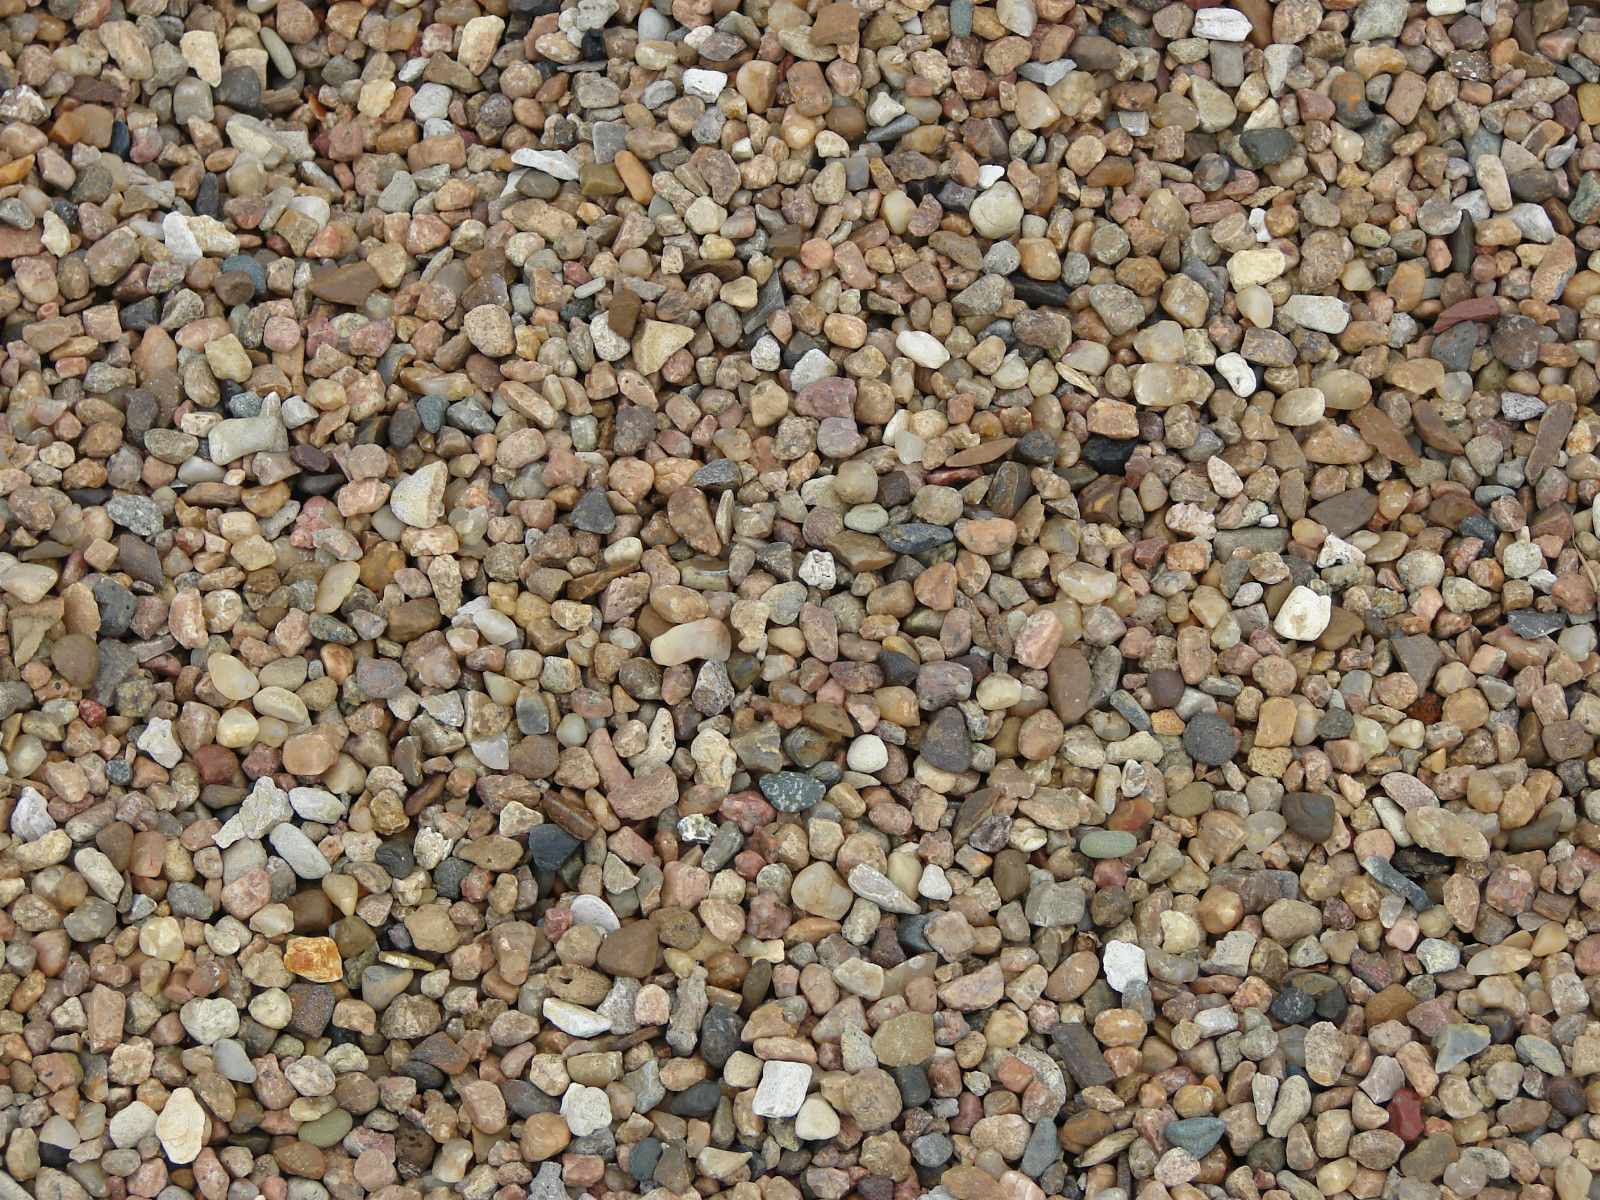 Aquarium natural pea gravel 25kg fish tank substrate koi for Fish tank pebbles